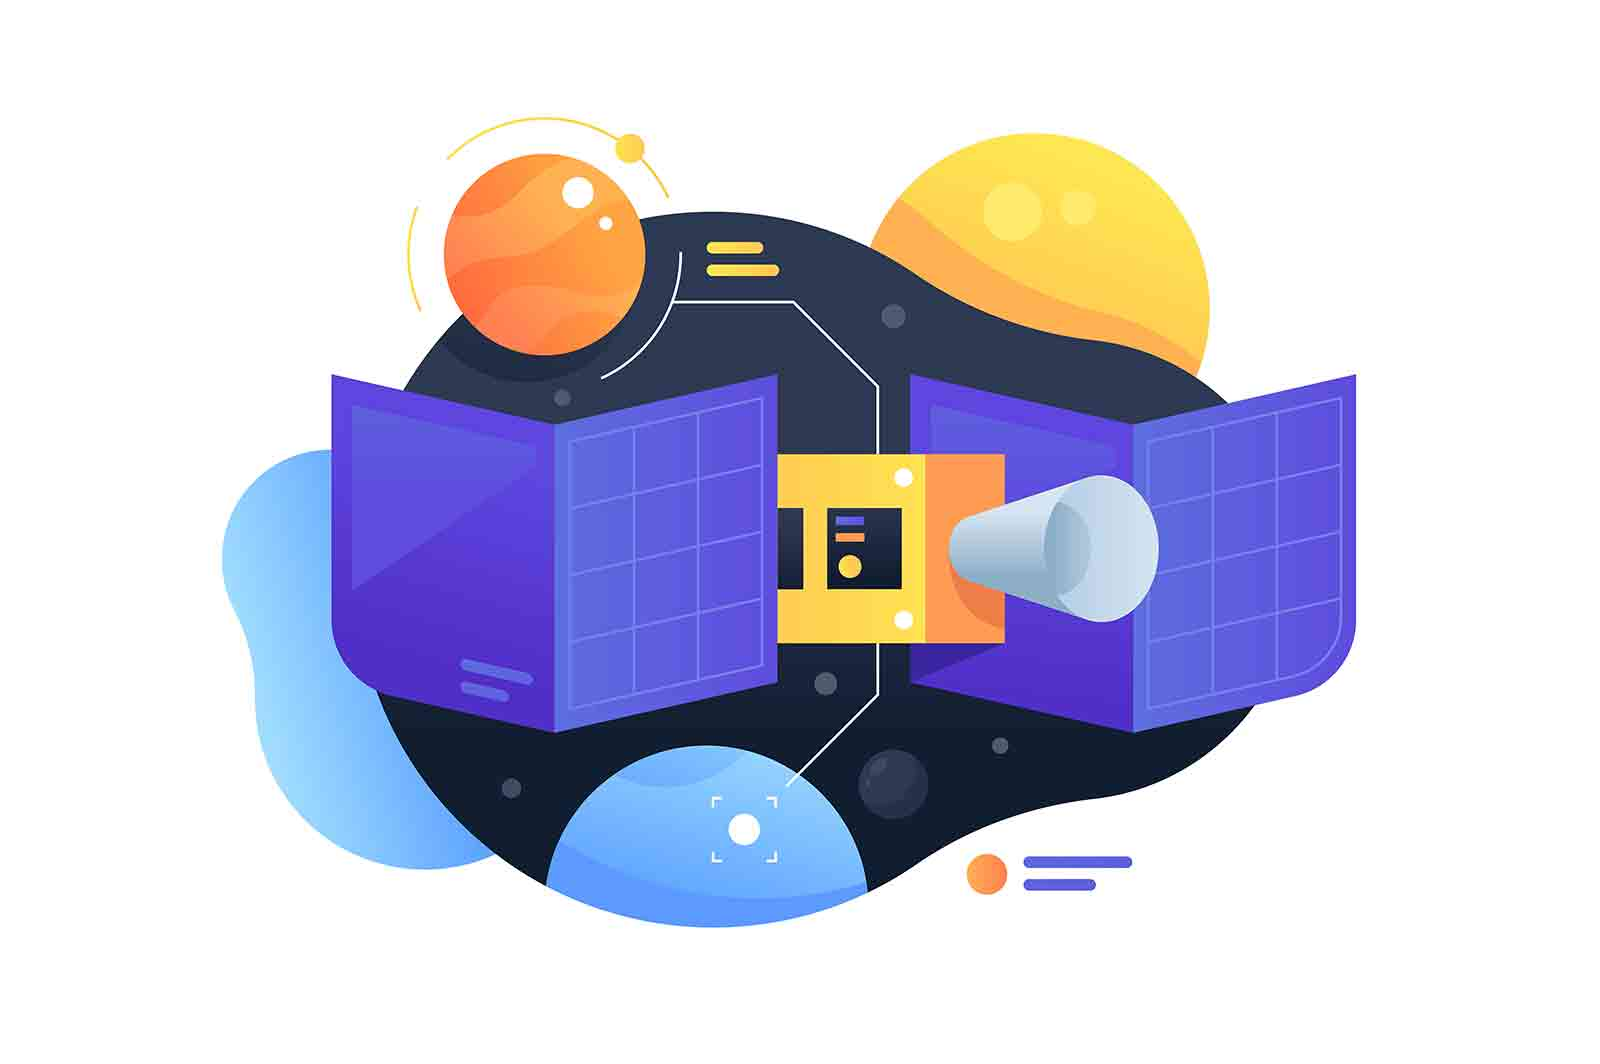 Modern technology satellite using study of celestial objects in space. Icon concept of science for orbiting the earth monitoring, tracking and describing planets.